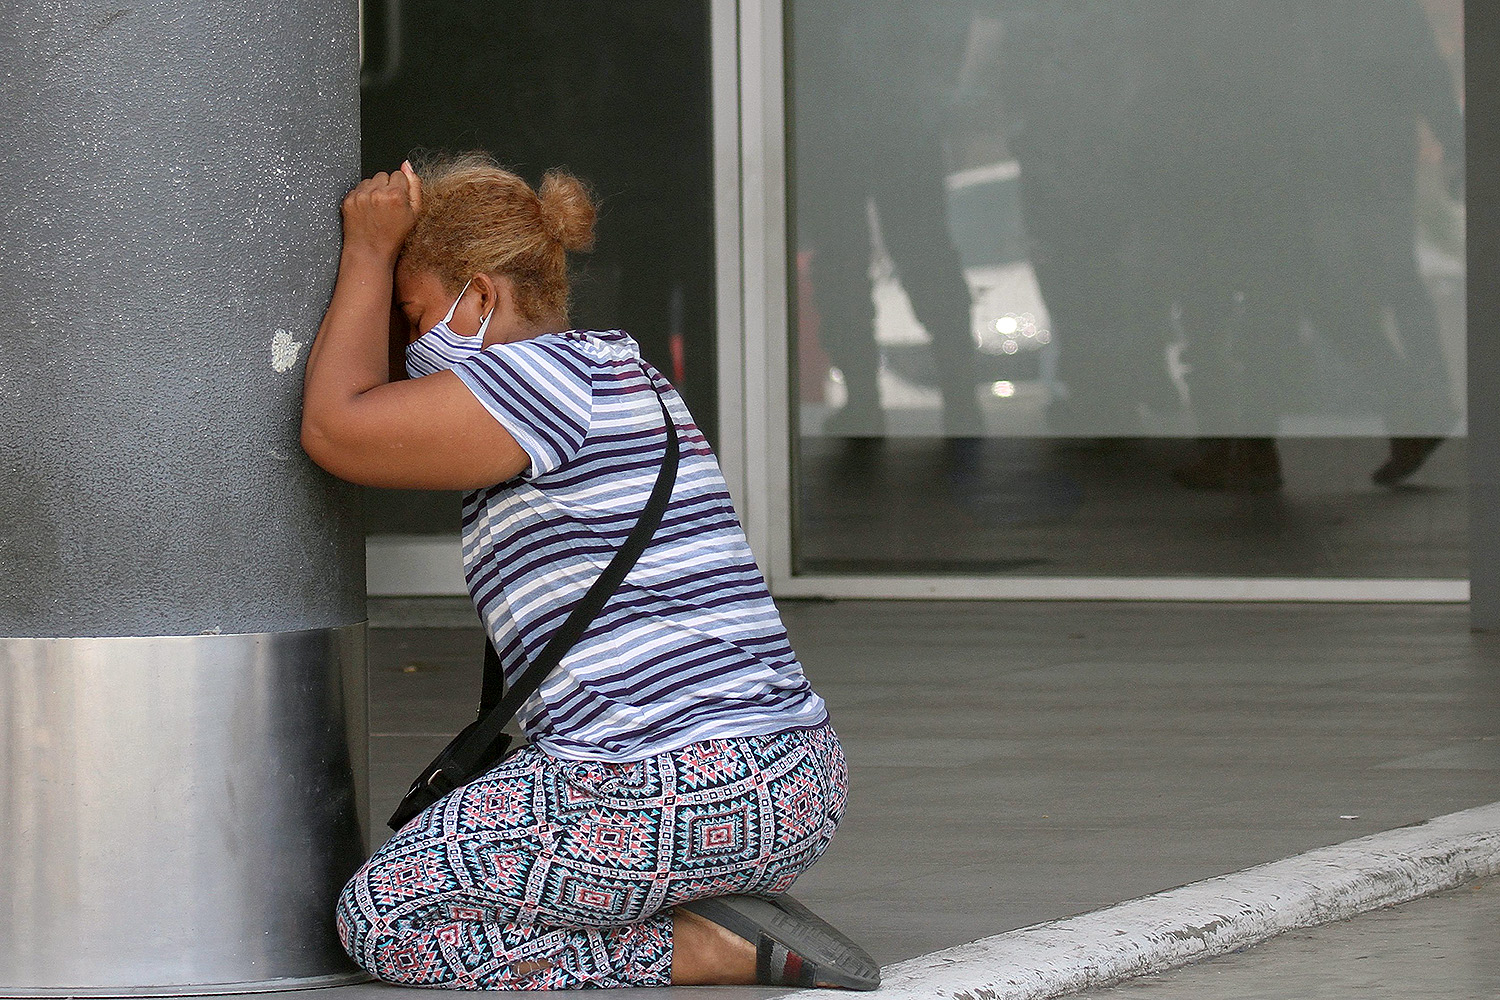 A woman cries after learning about the death of a relative at Los Ceibos Hospital in Guayaquil, Ecuador, on April 4. ENRIQUE ORTIZ/AFP via Getty Images